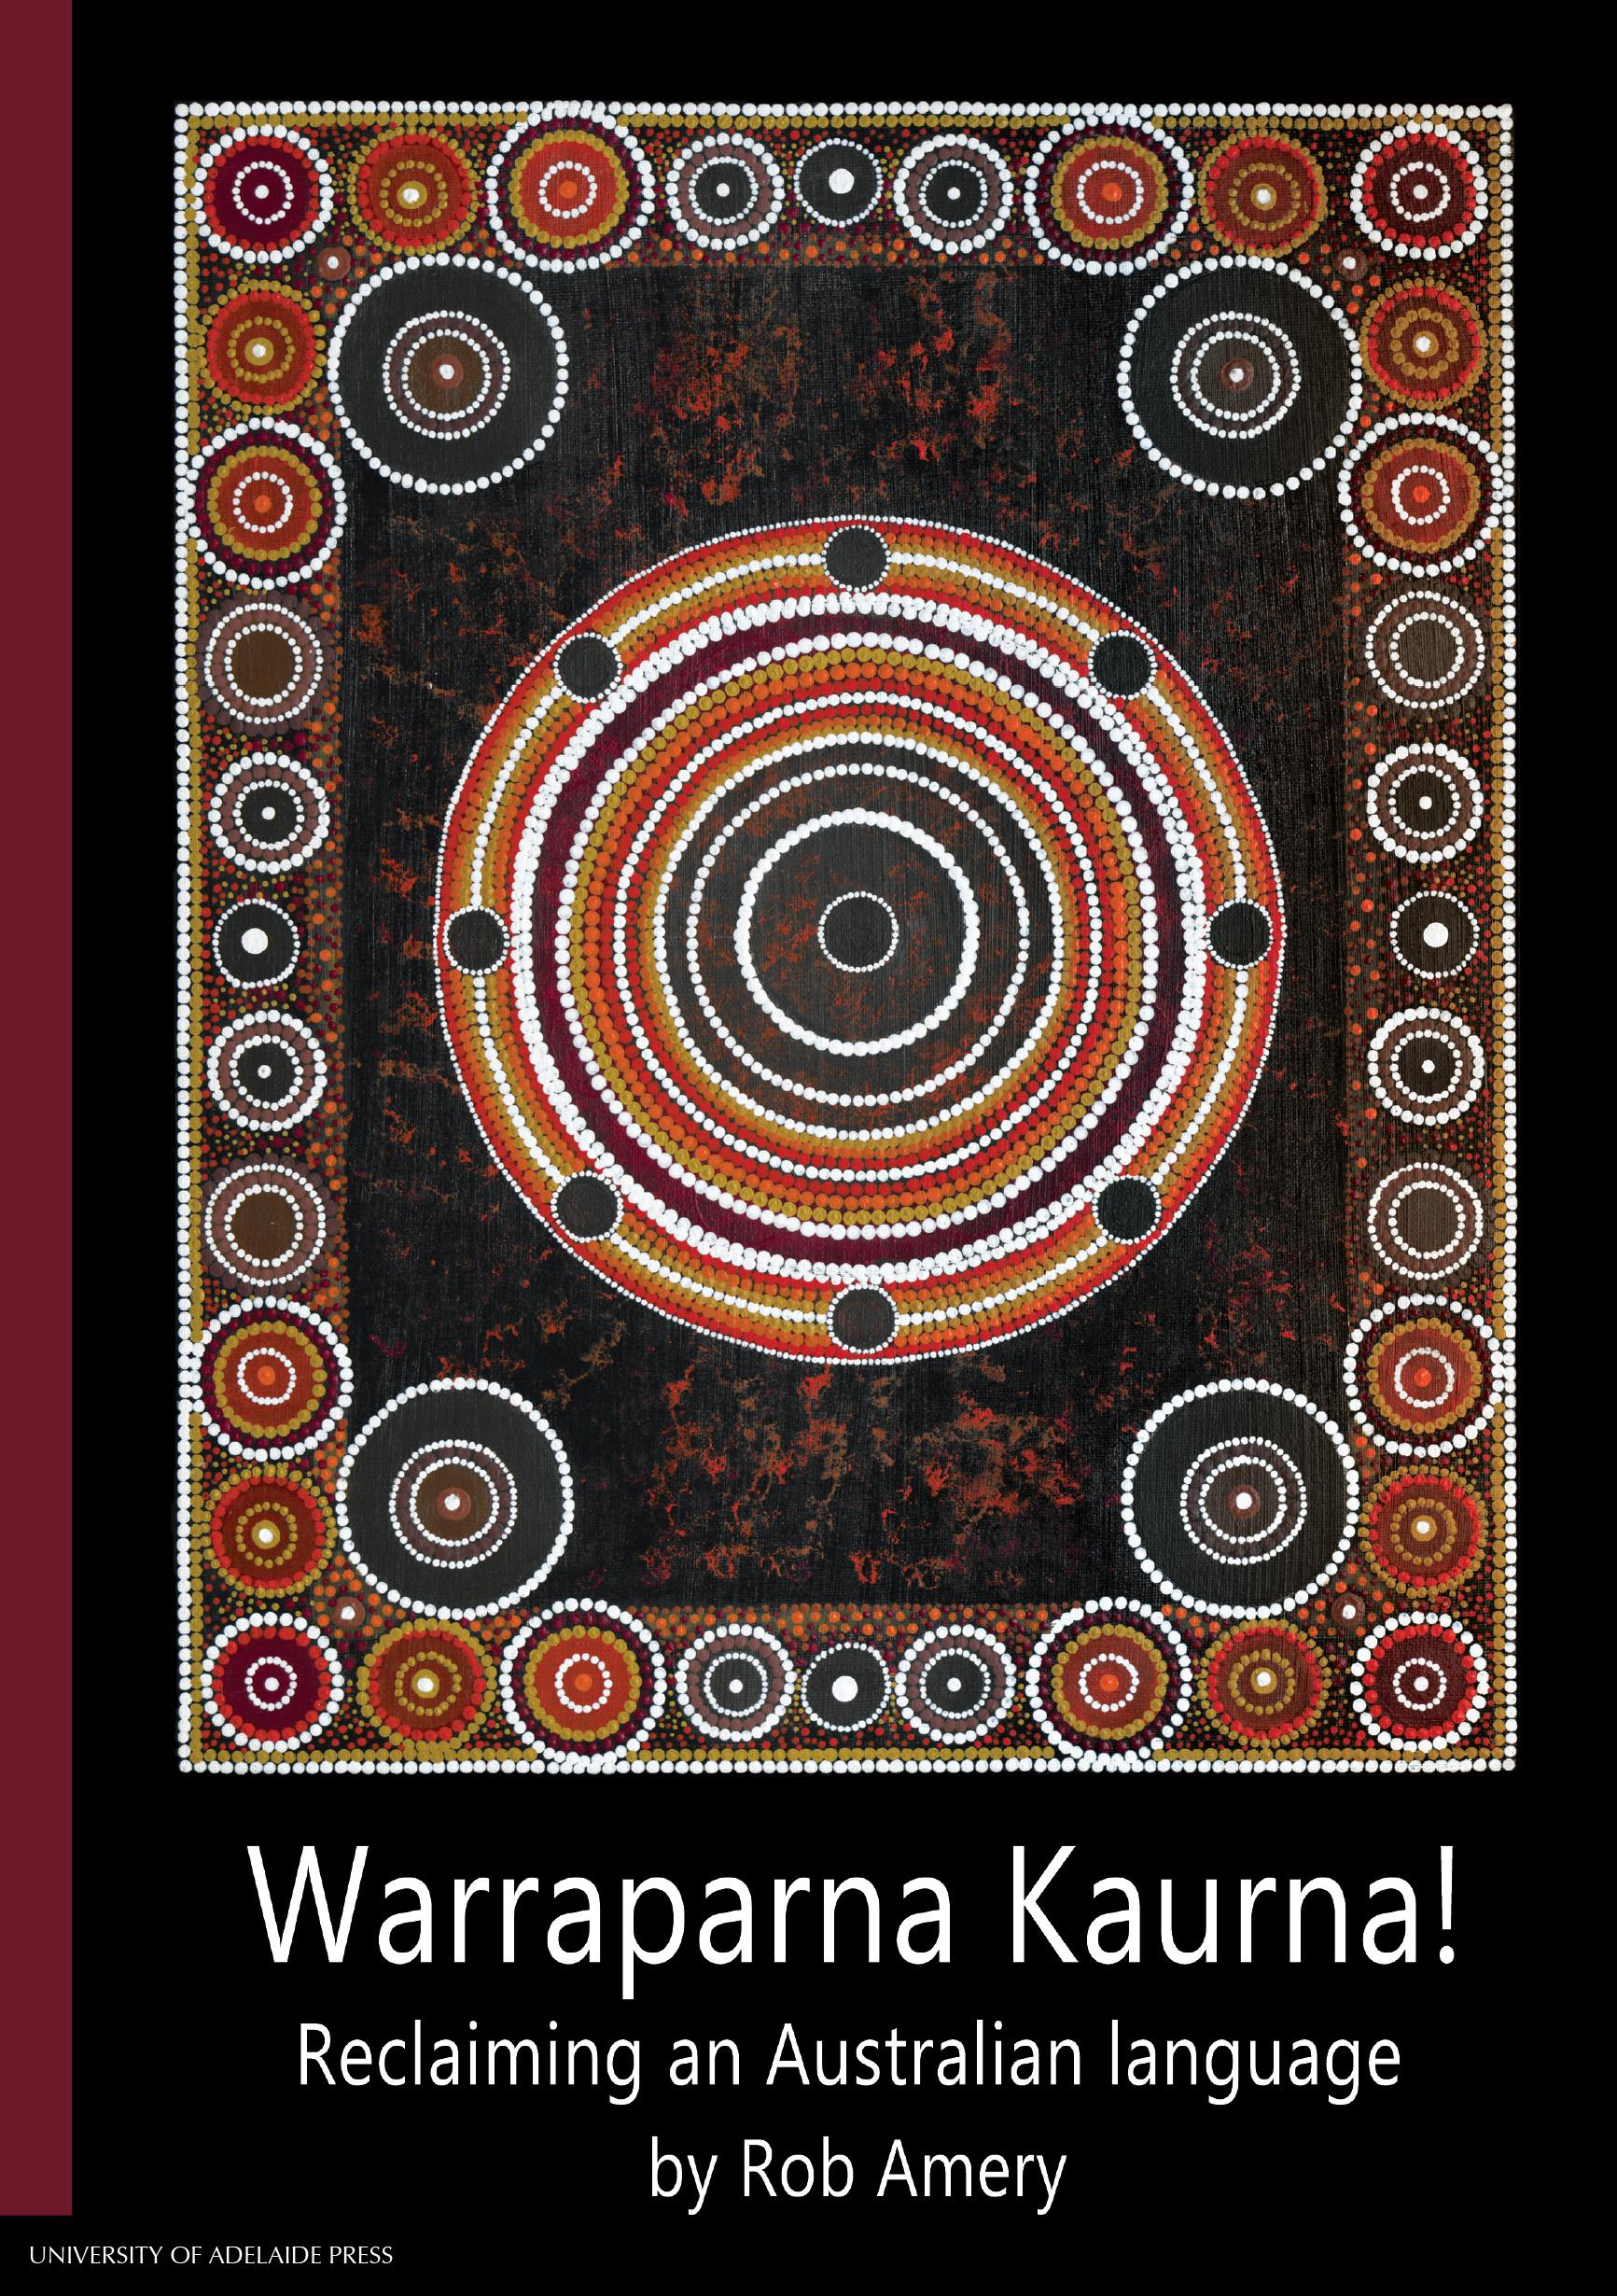 Warraparna Kaurna!